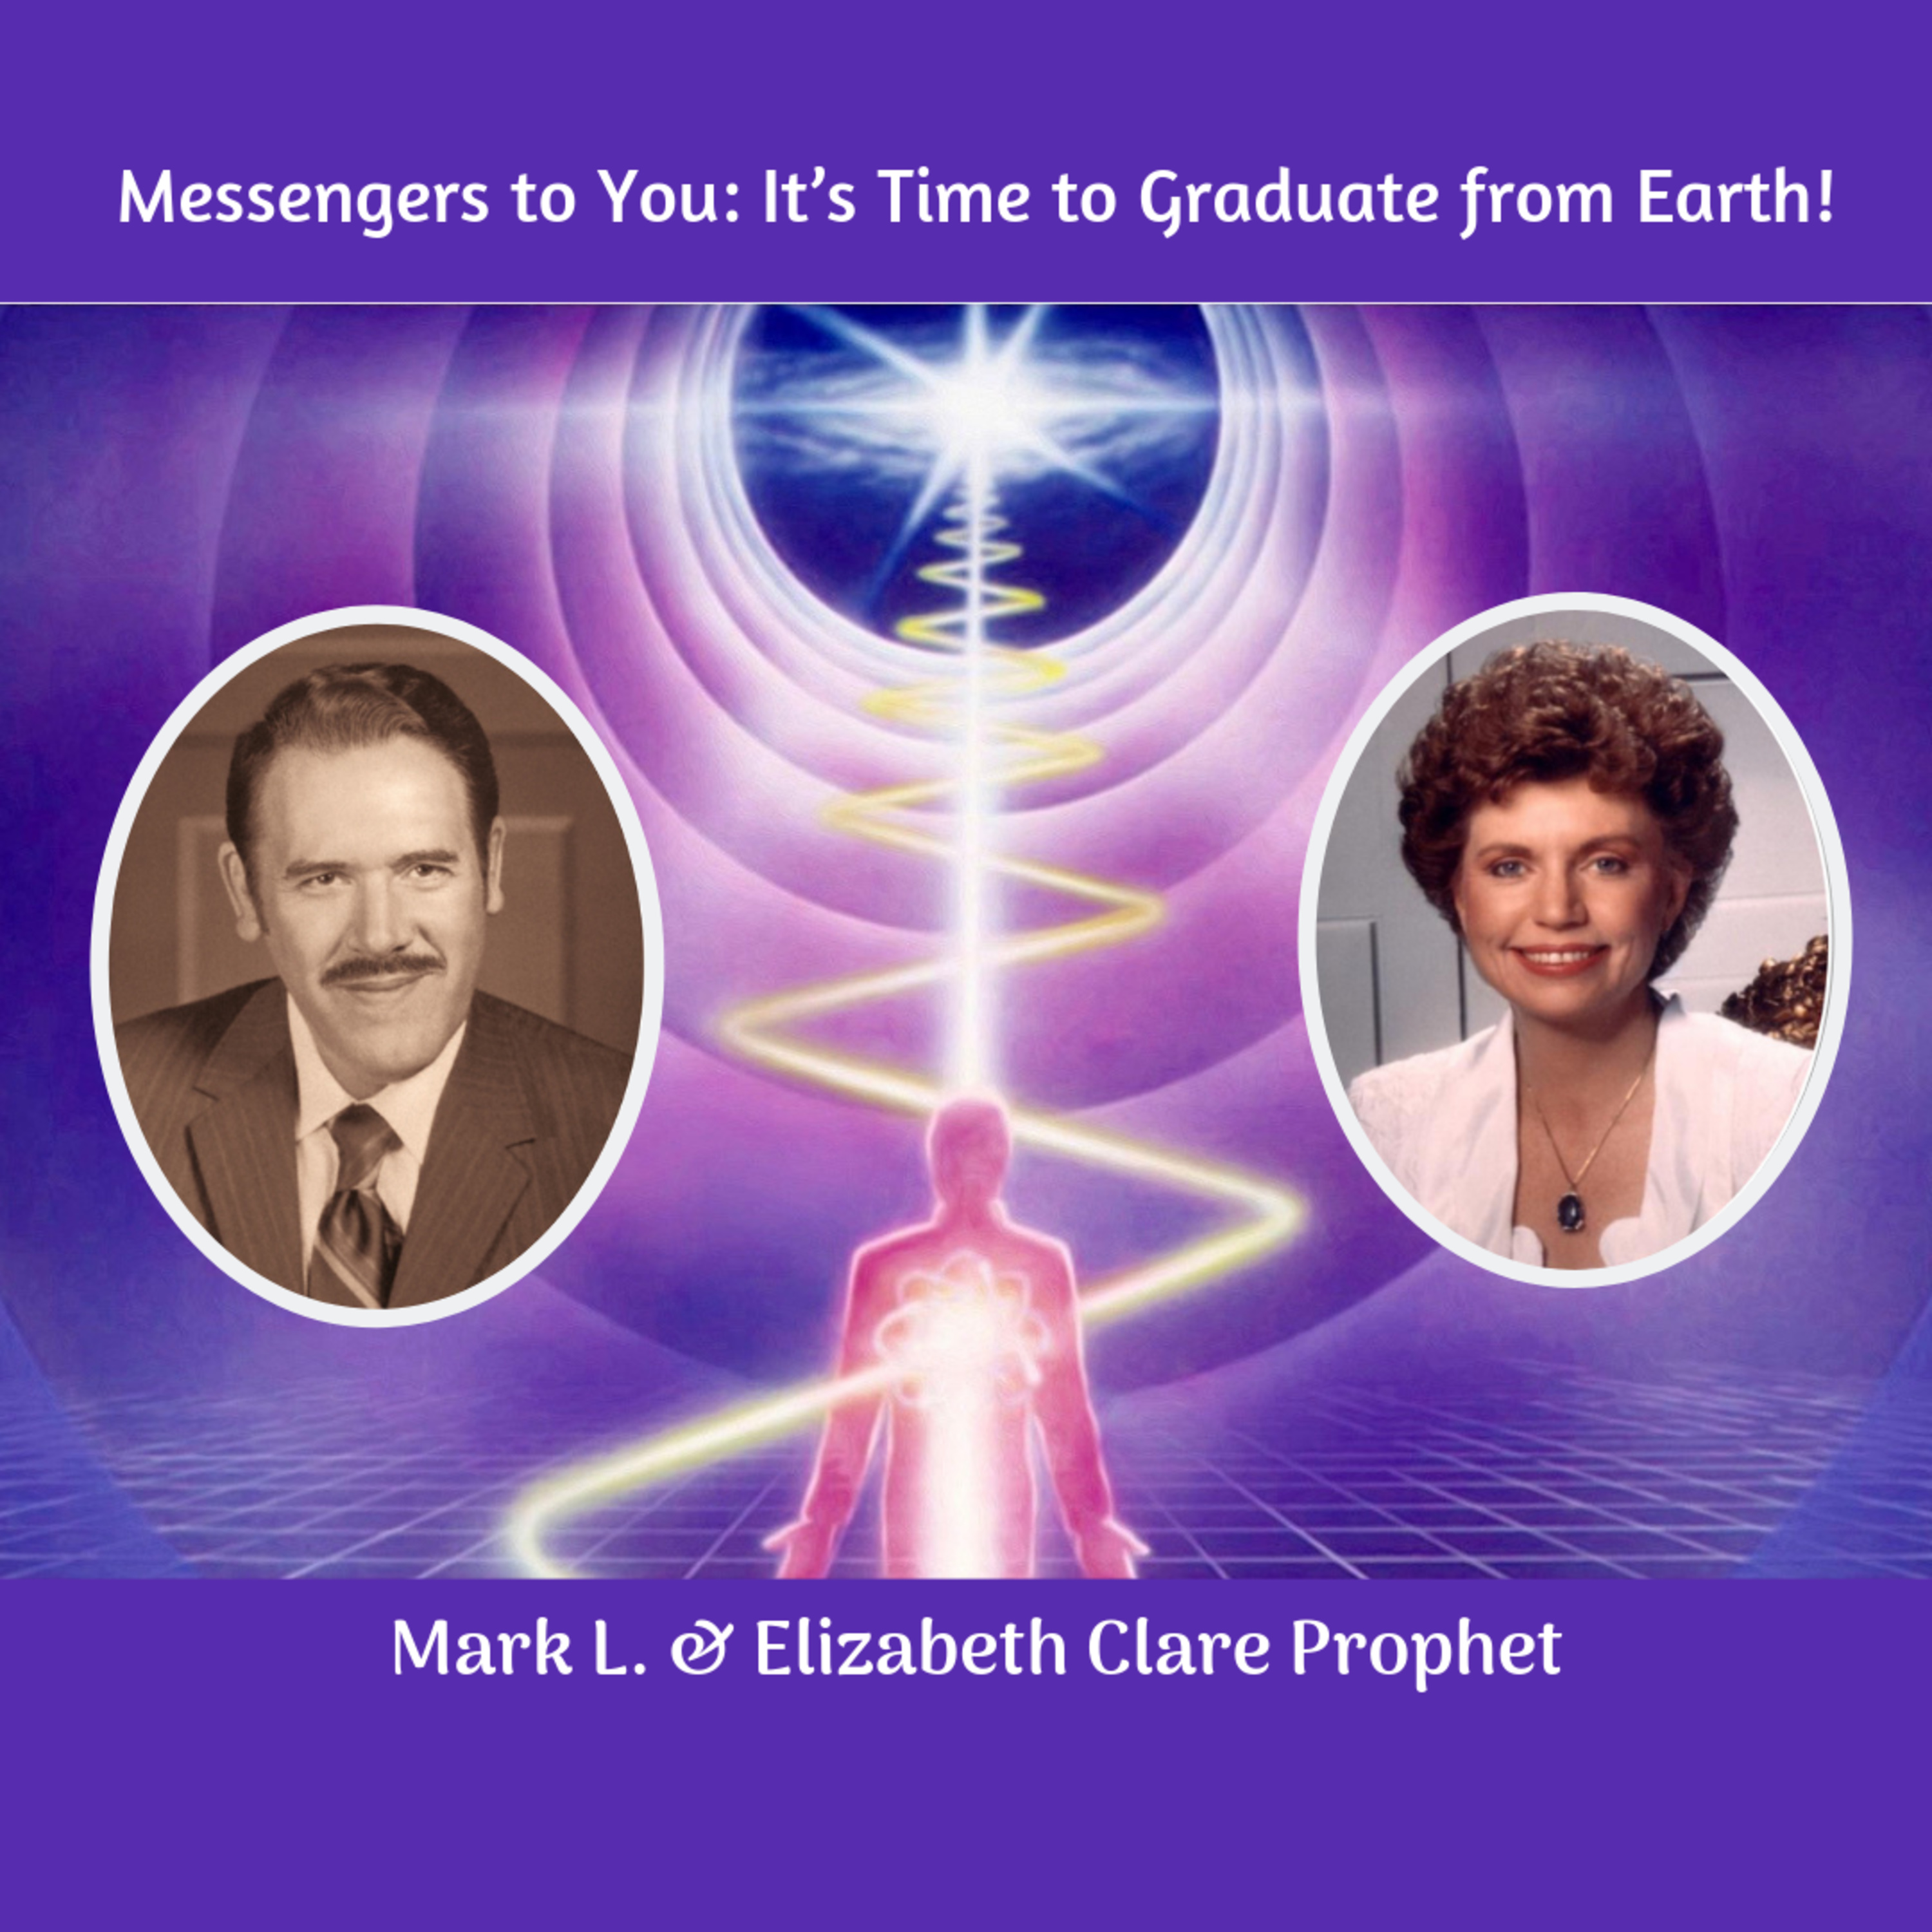 Messengers to You: It's Time to Graduate from Earth!